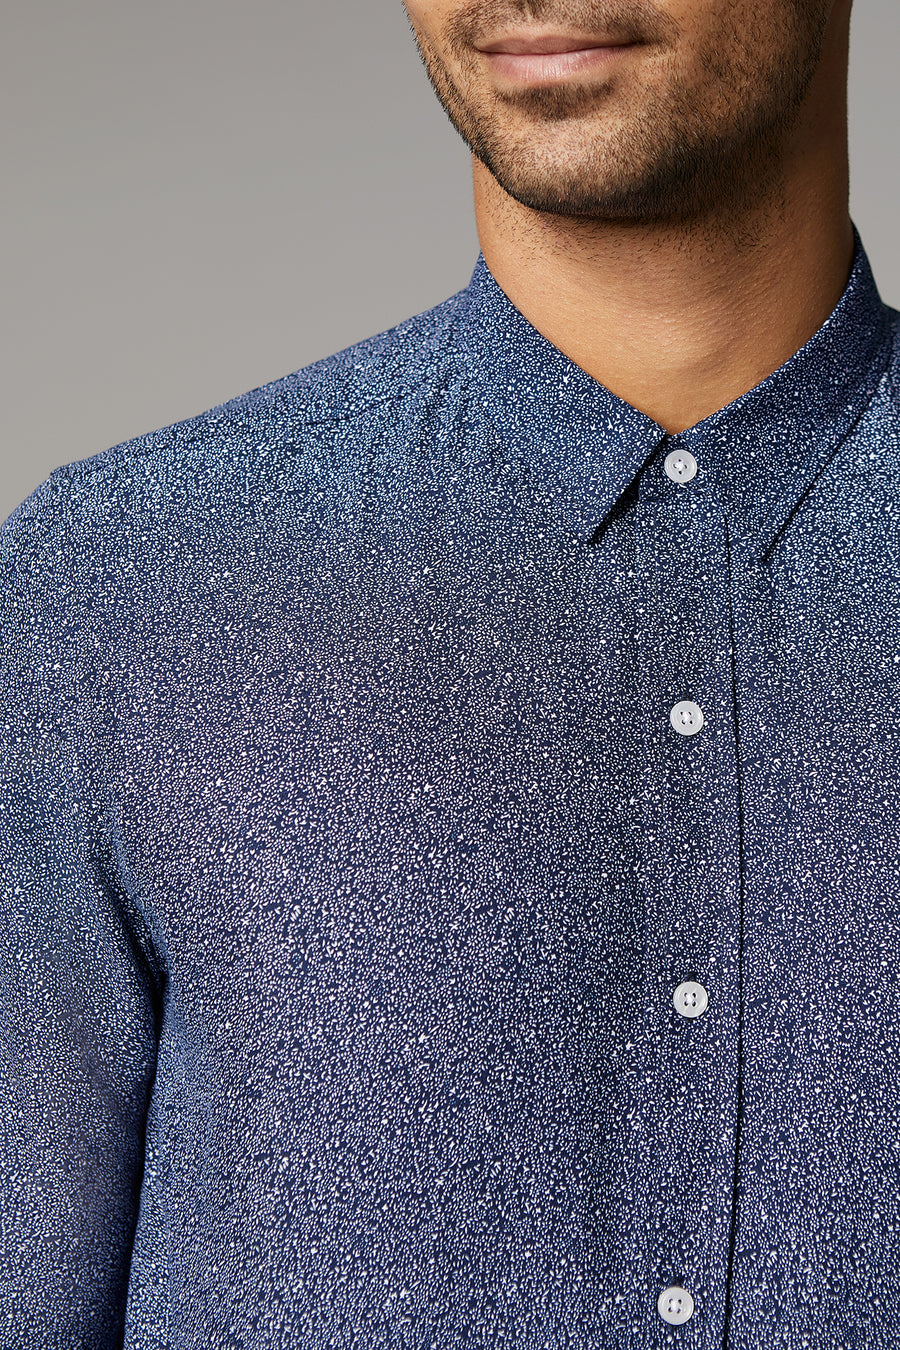 Ryan Ditsy Speckled Shirt